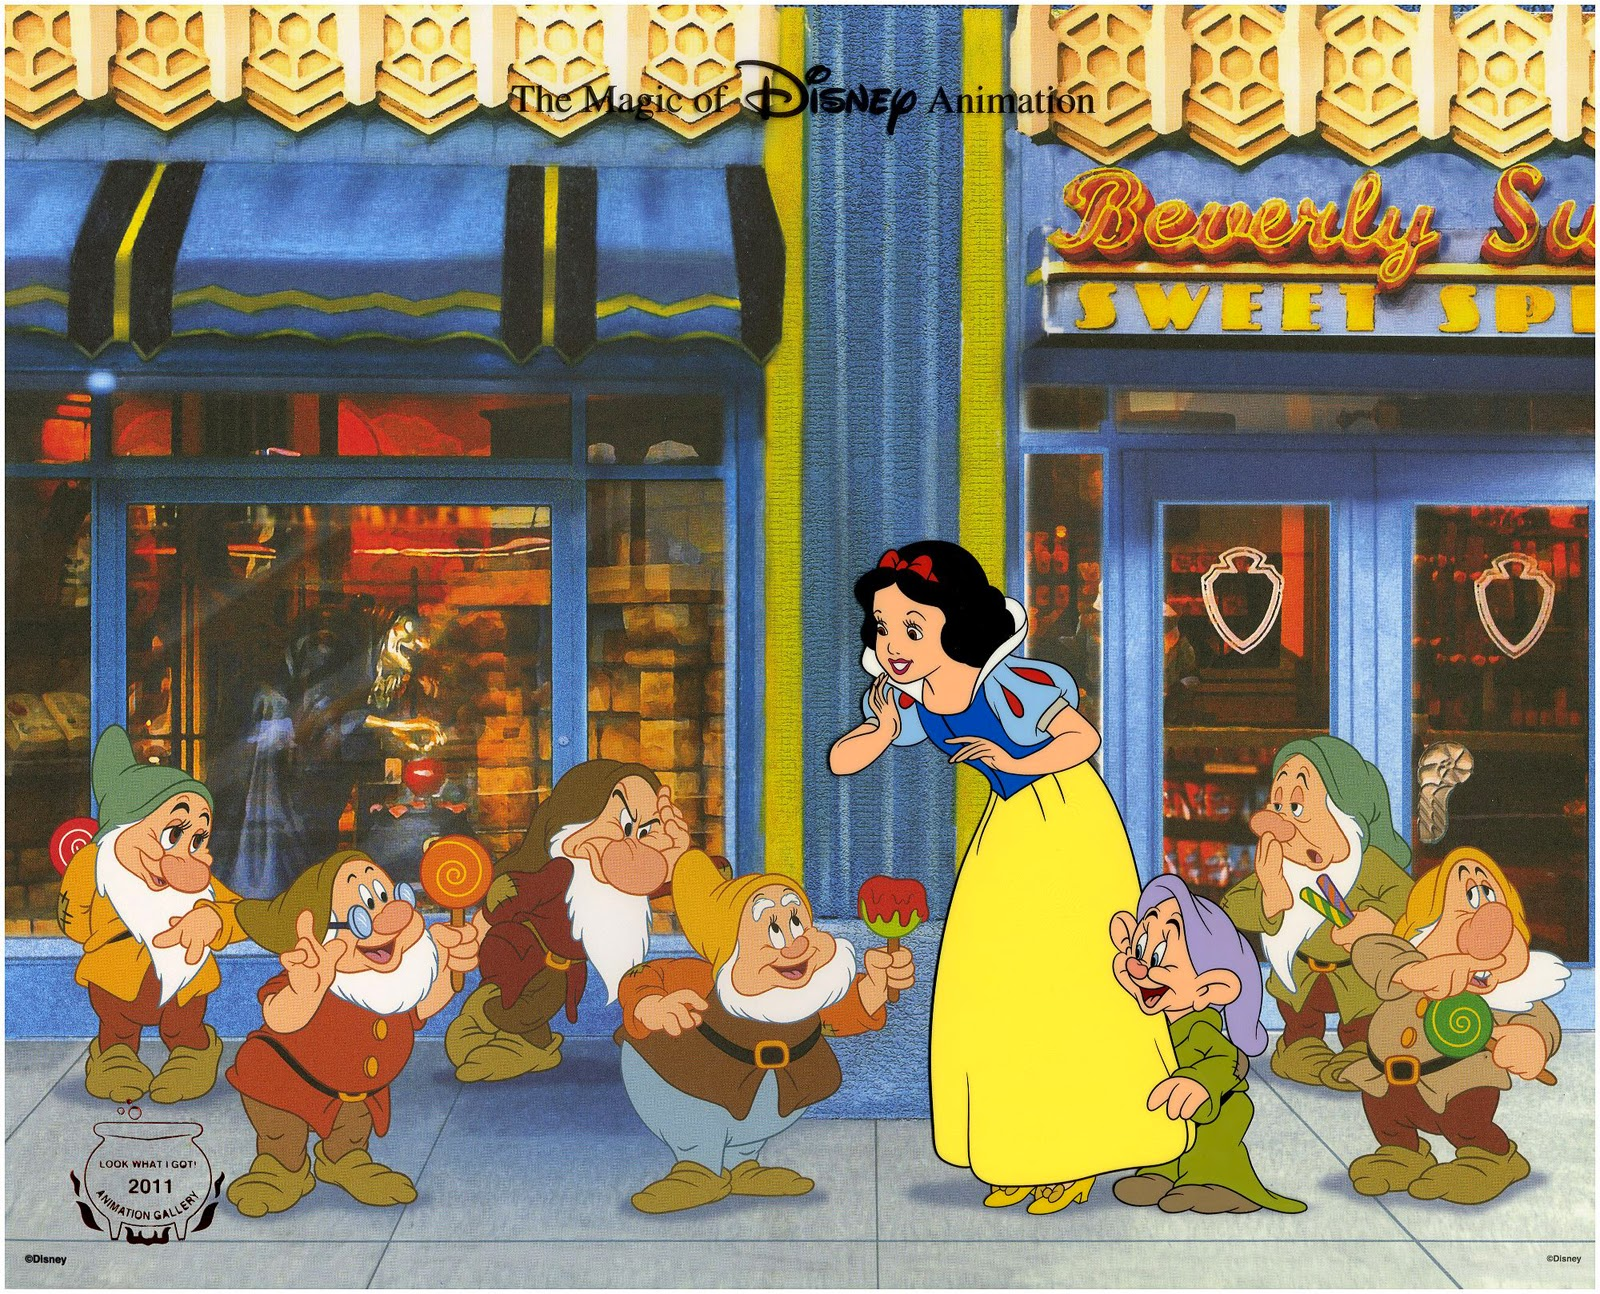 Filmic light snow white archive look what i got cel art hand embossed with the 2011 design seal image size 105 x 13 retail 15000 includes a certificate of authenticity stock images copyright disney 1betcityfo Choice Image